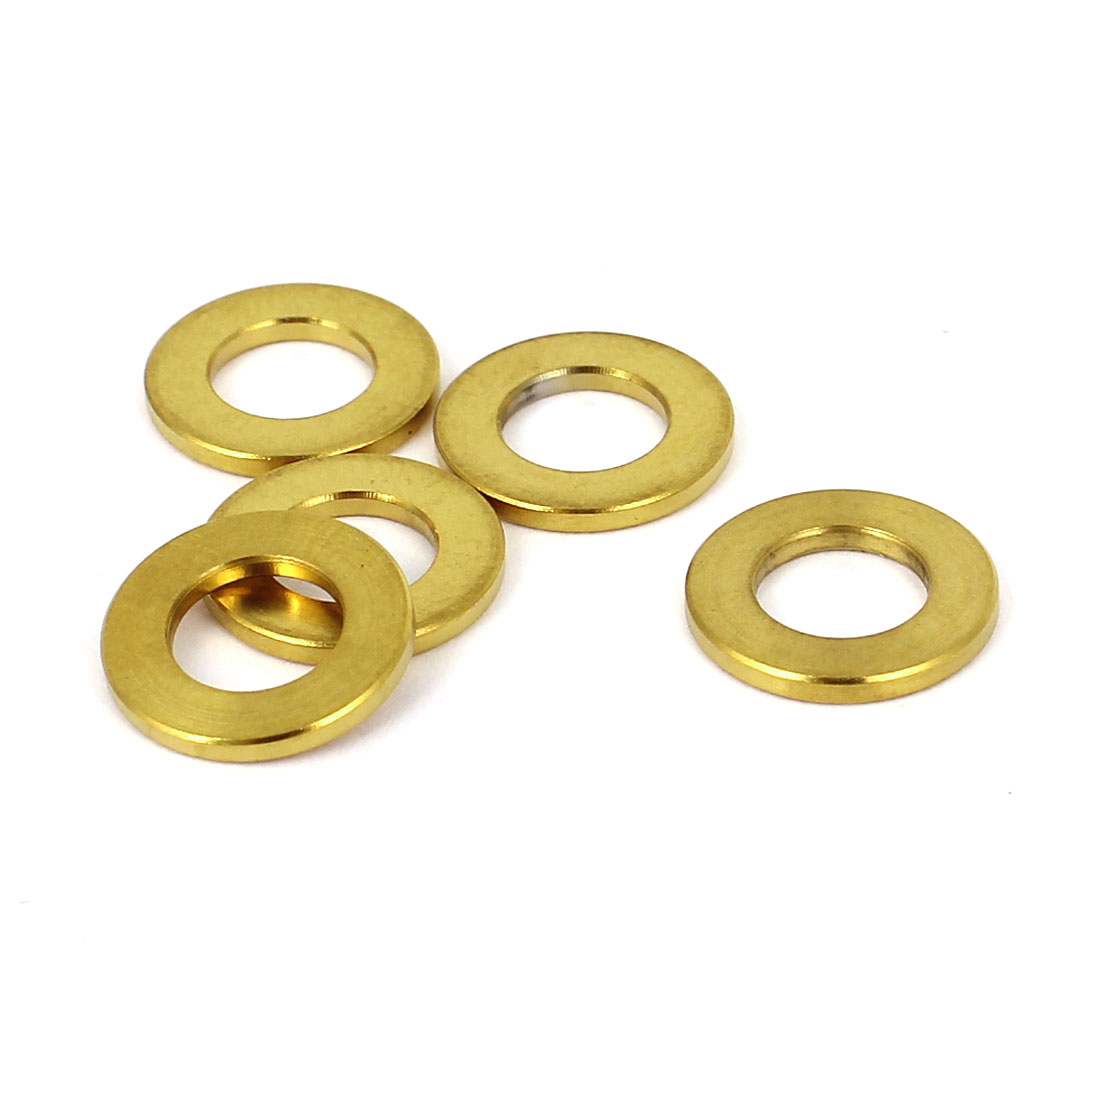 5 Pcs M6 Gold Tone Titanium Ti Metric Plain Flat Washer DIN 125A for Bolt Screw